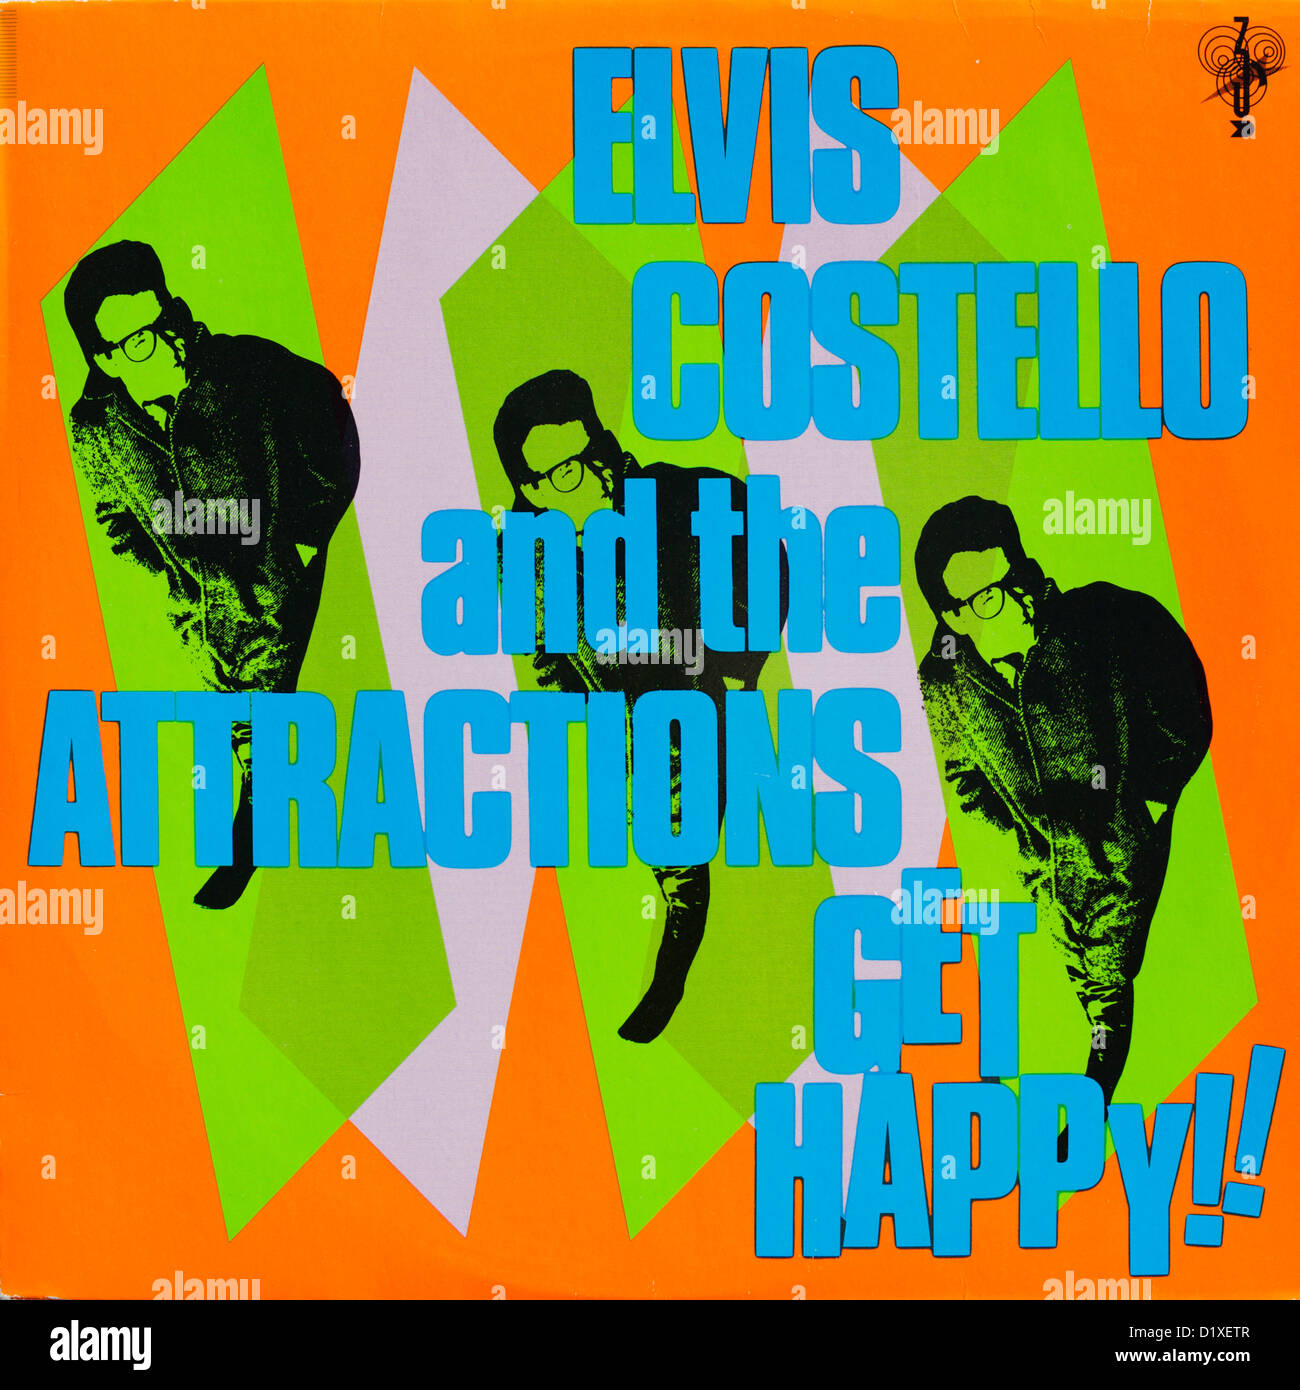 Elvis Costello And The Attractions Record Album Cover